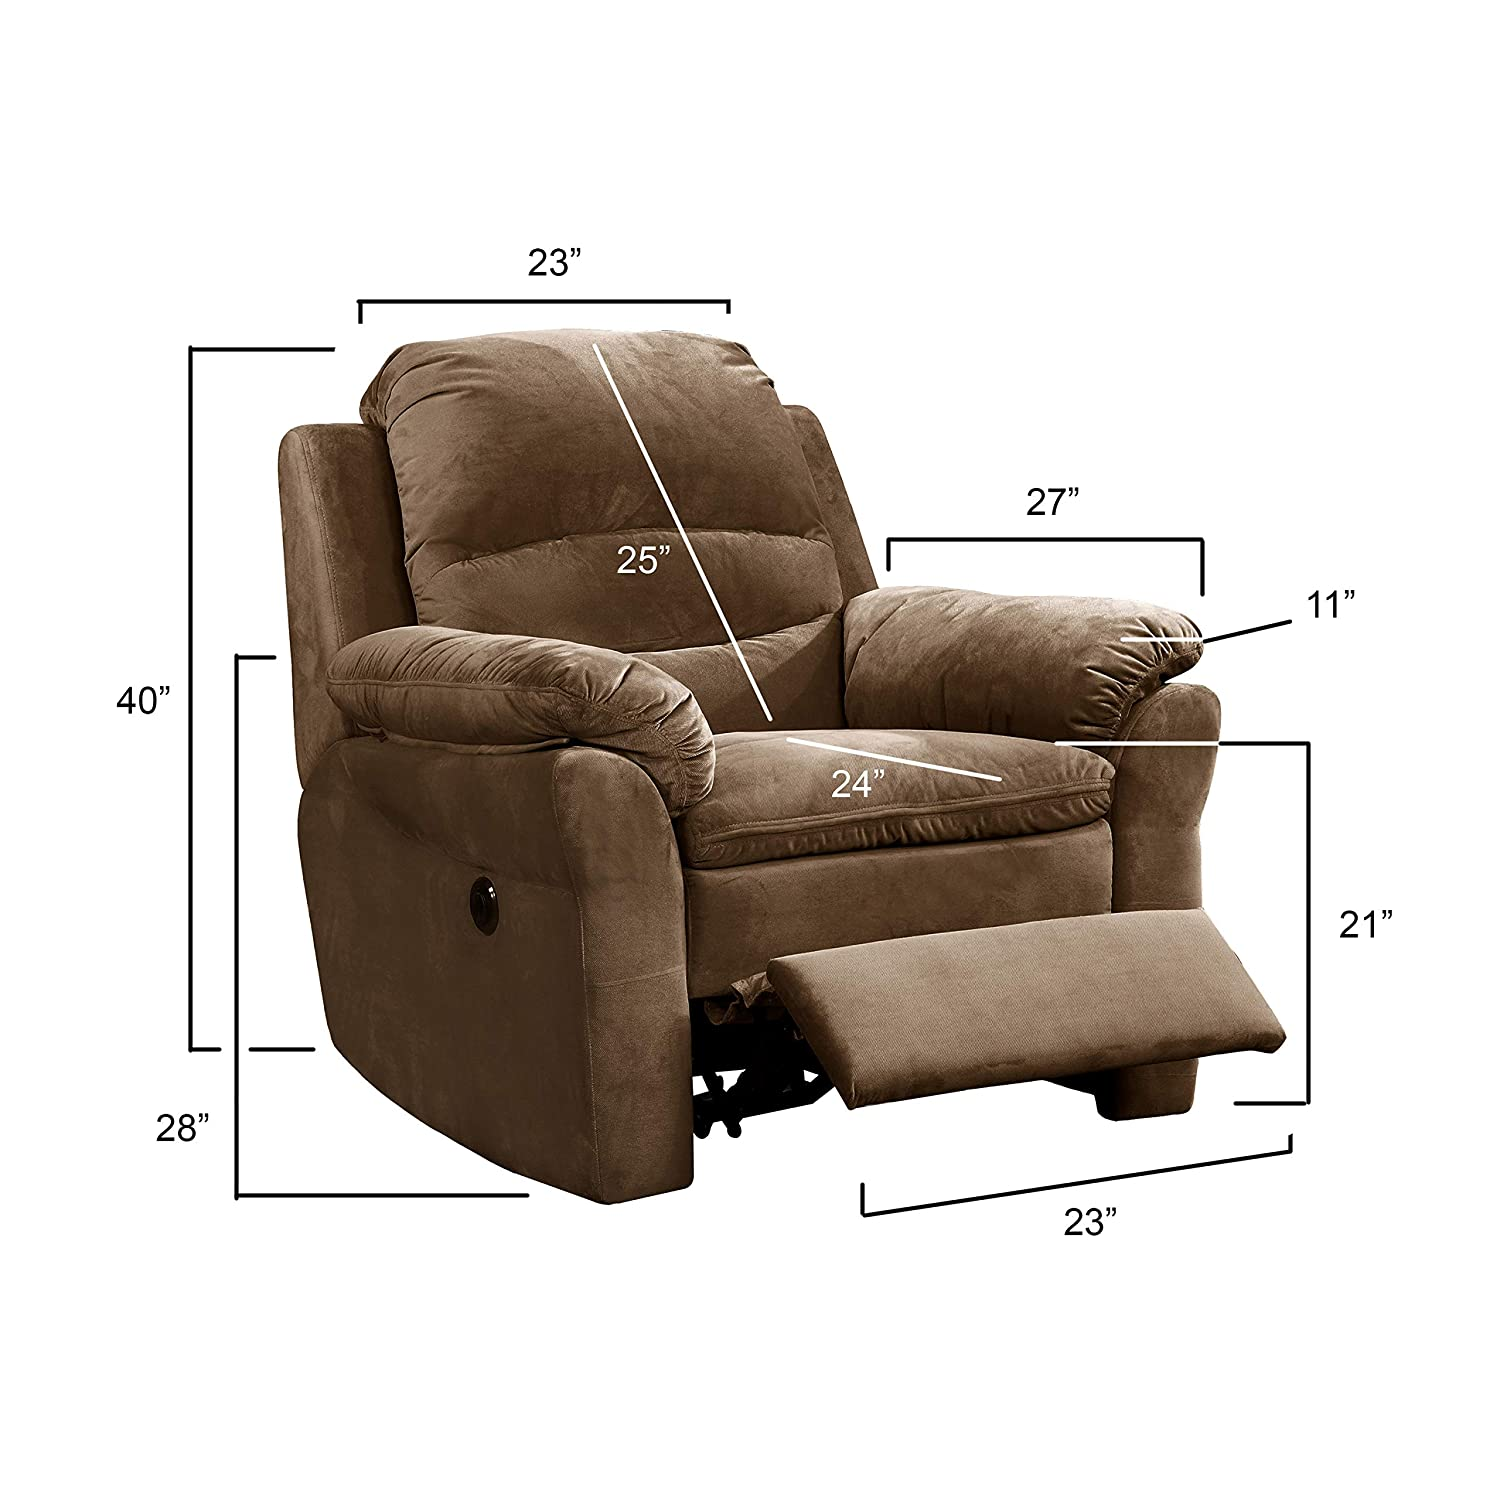 Groovy Ac Pacific Felix Collection Contemporary Style Fabric Upholstered Living Room Electric Recliner Power Chair Brown Machost Co Dining Chair Design Ideas Machostcouk